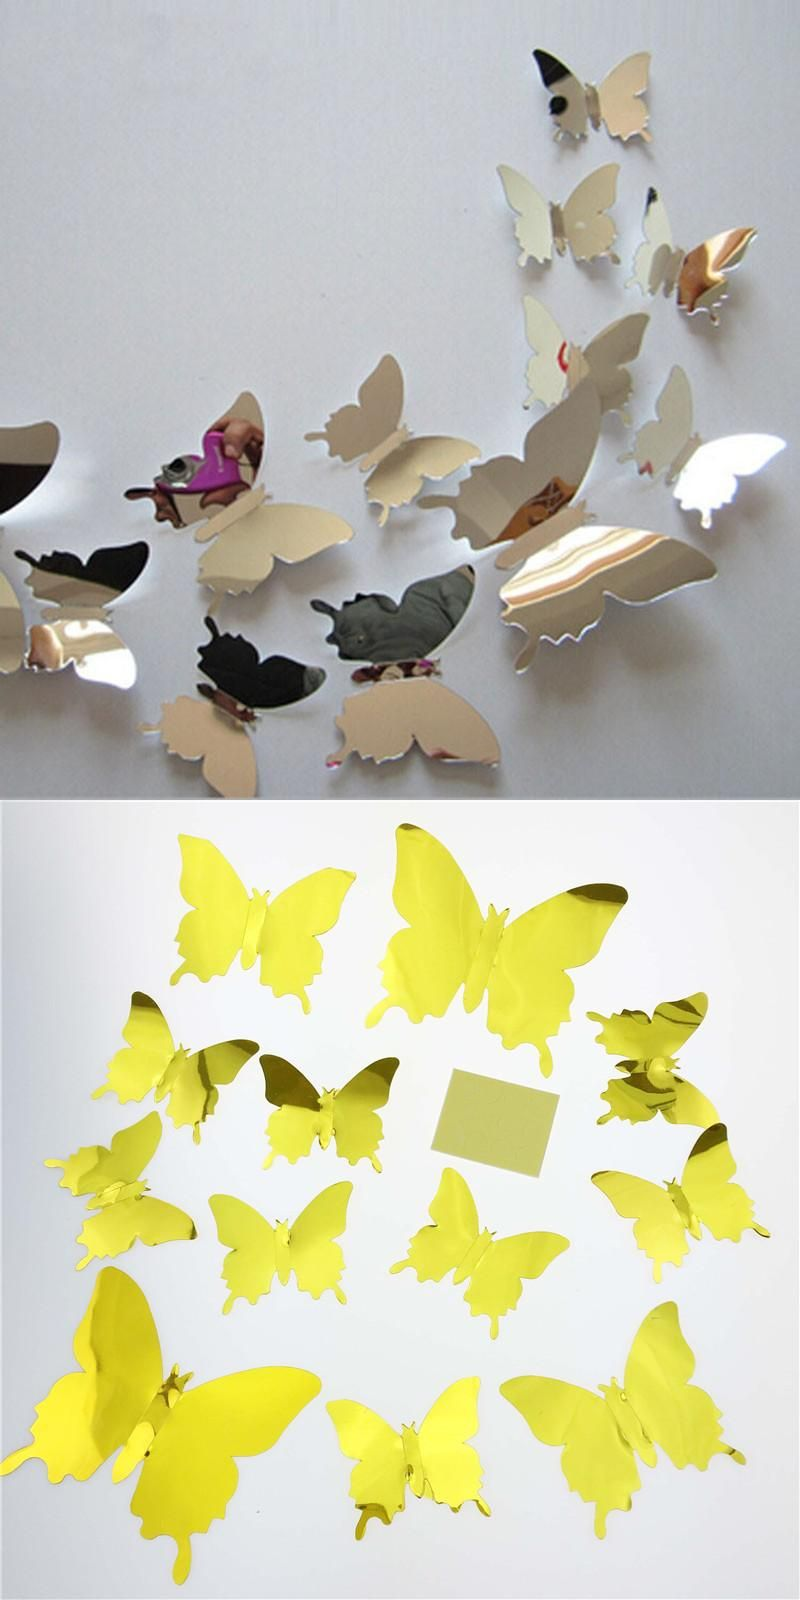 Fantastic Butterfly Wall Decor For Kids Room Images - The Wall Art ...